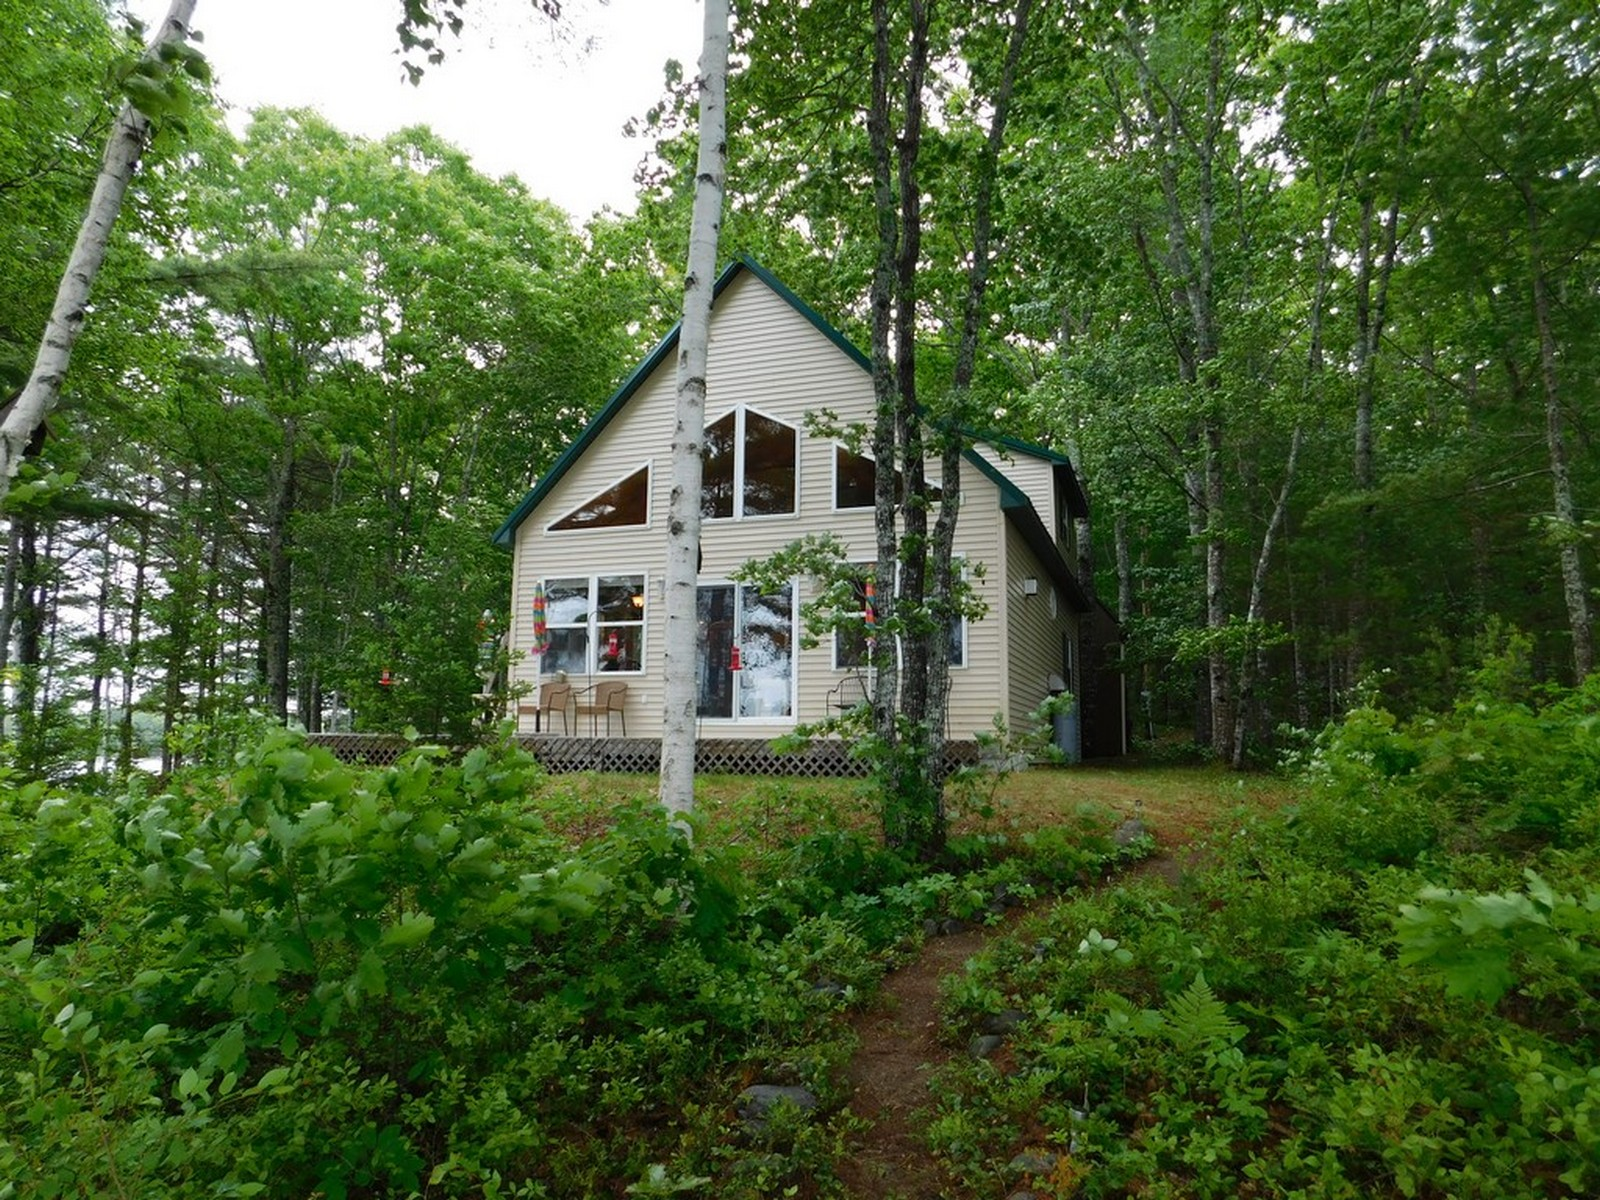 Single Family Home for Sale at Birch Point Cottage 269 West Beddington Lake Rd Beddington, Maine, 04622 United States